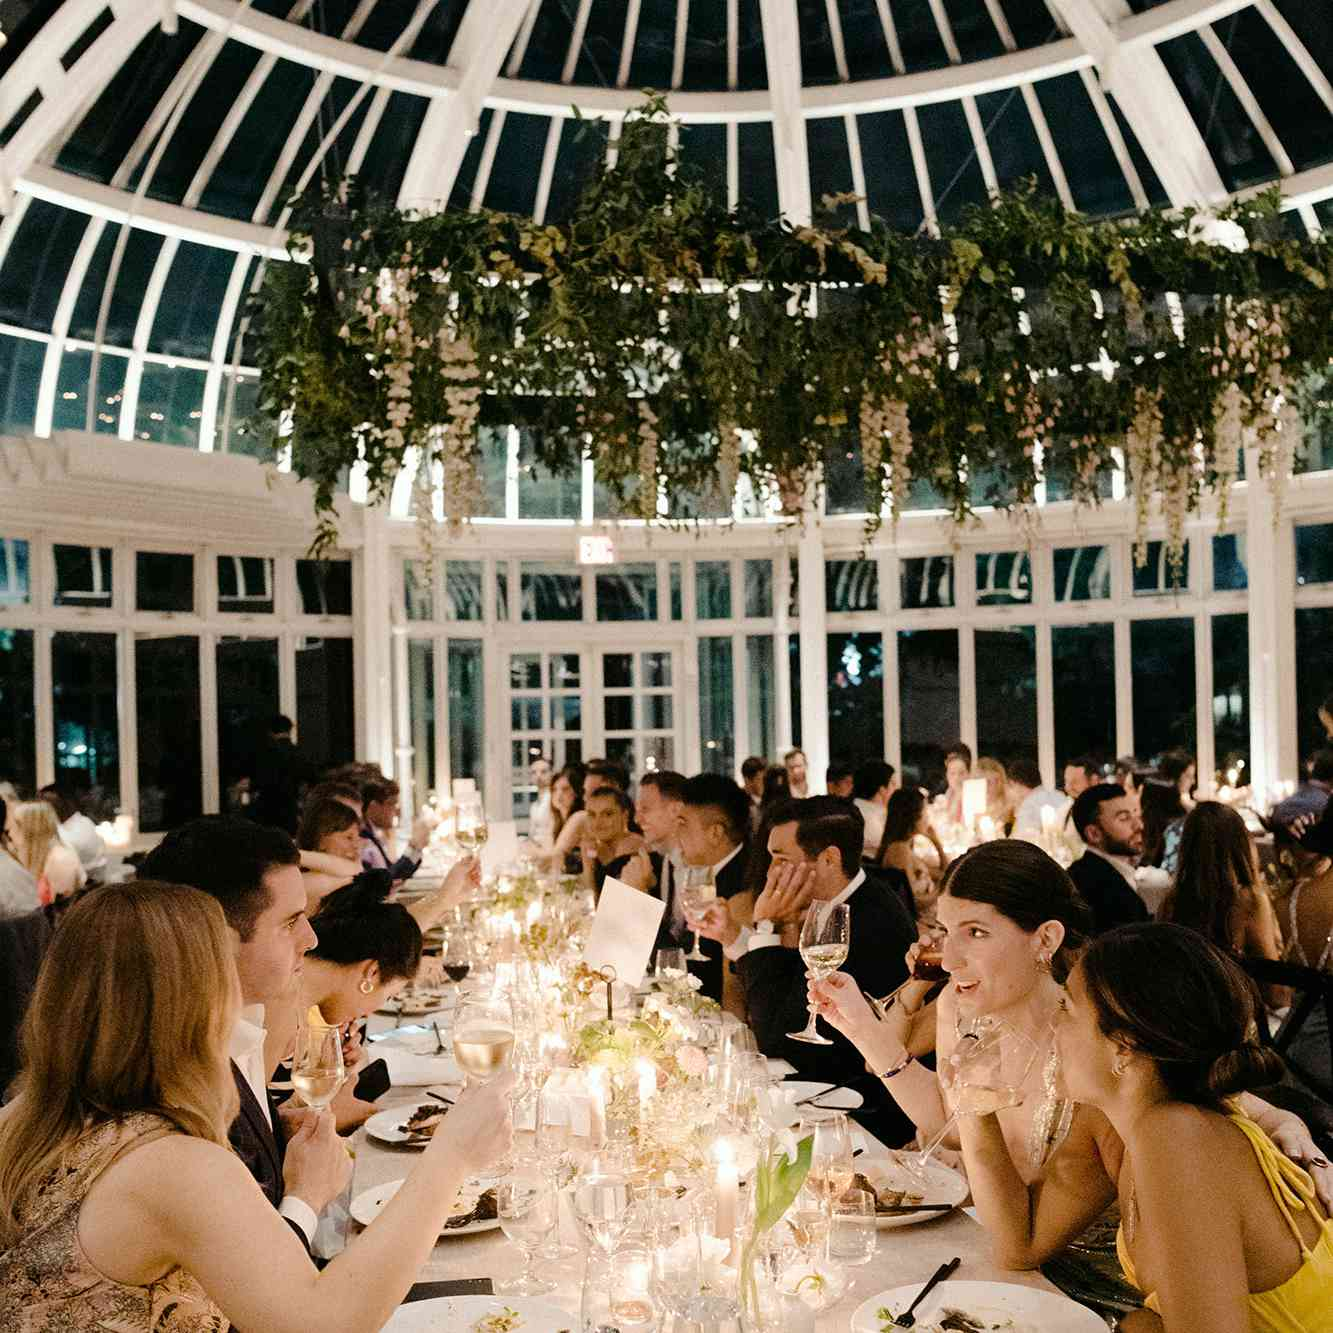 Easily reached by public transportation or car, the garden provides stunning settings and tranquil spaces for your private and corporate events. A Summer Wedding At The Brooklyn Botanic Garden